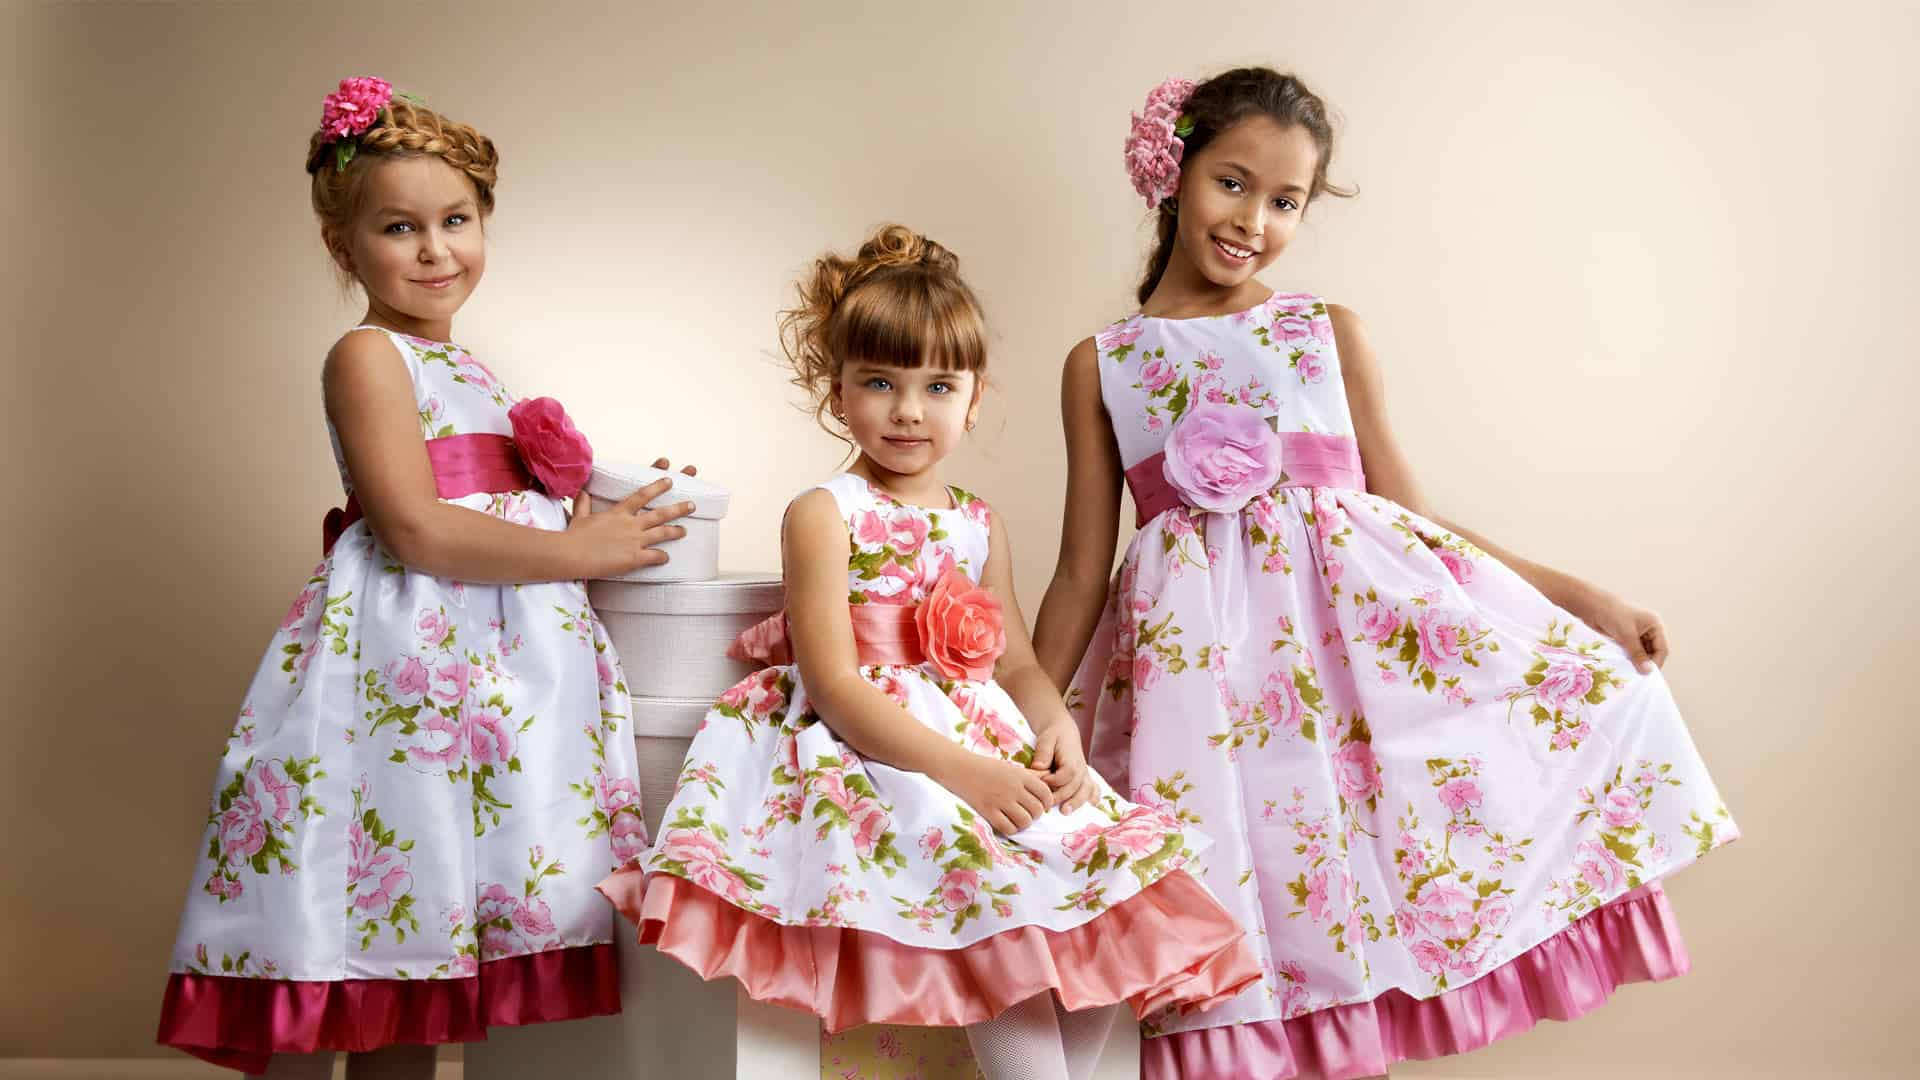 Kids Fashion Trends 2016 Girls Sundresses Dress Trends